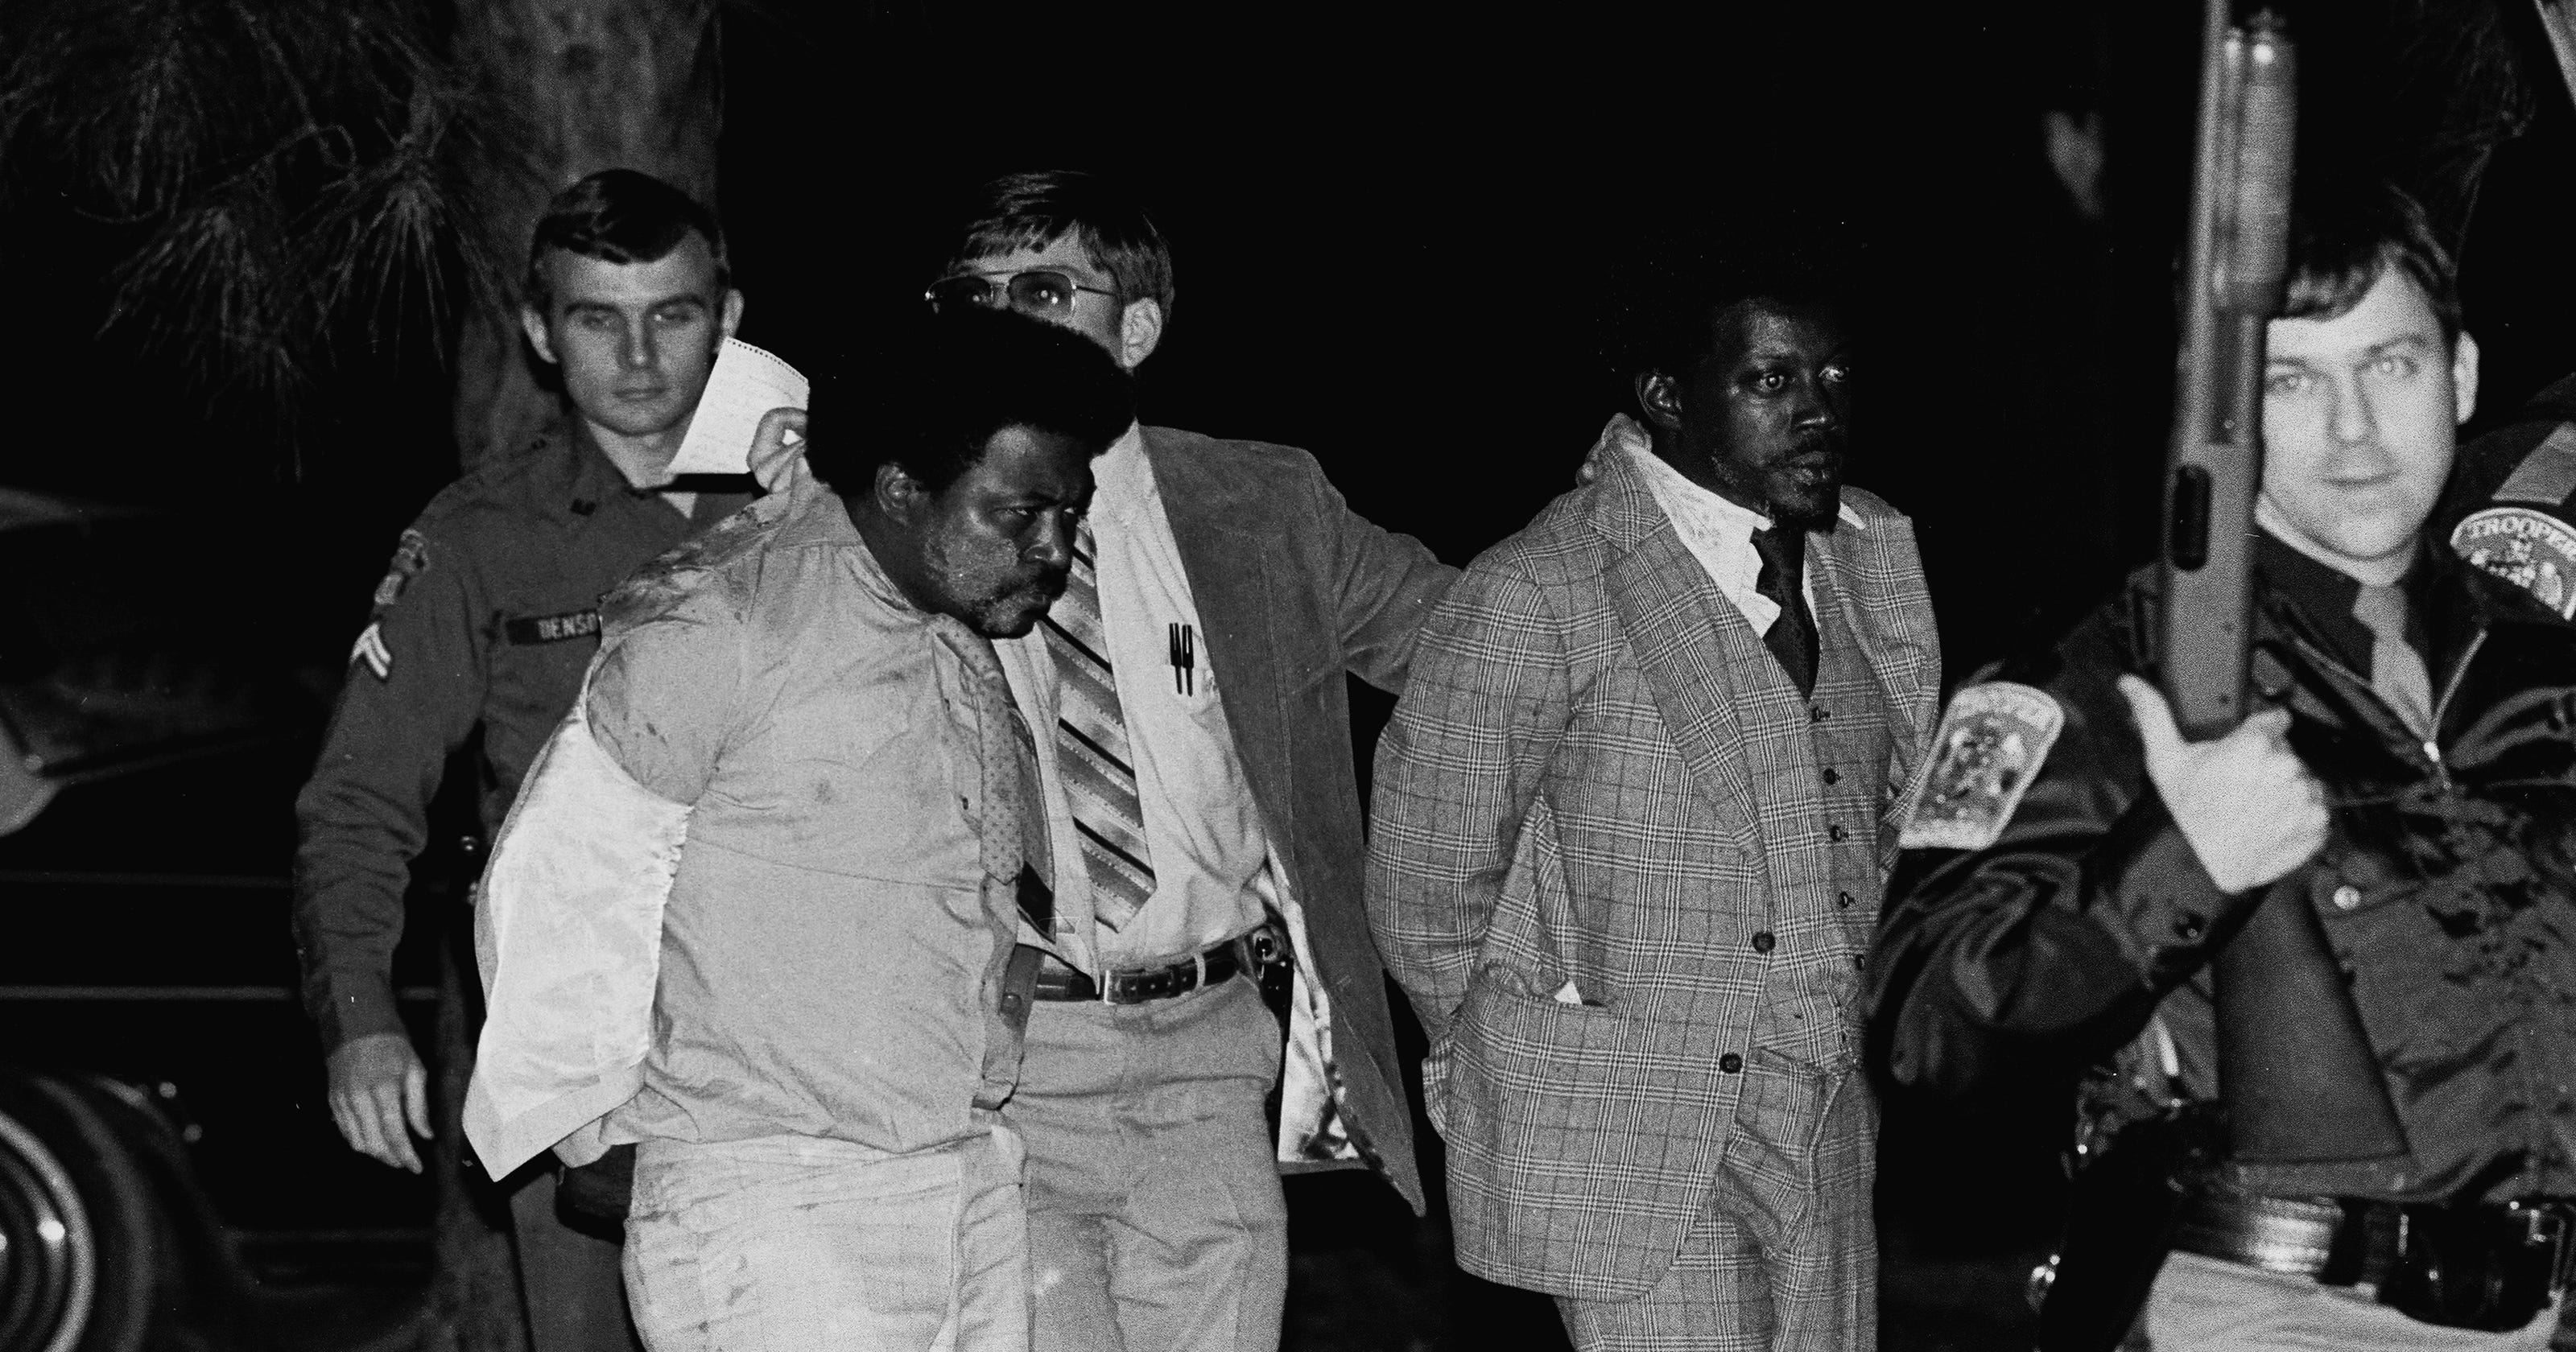 Montgomery's 'Todd Road' arrests made national headlines in 1983